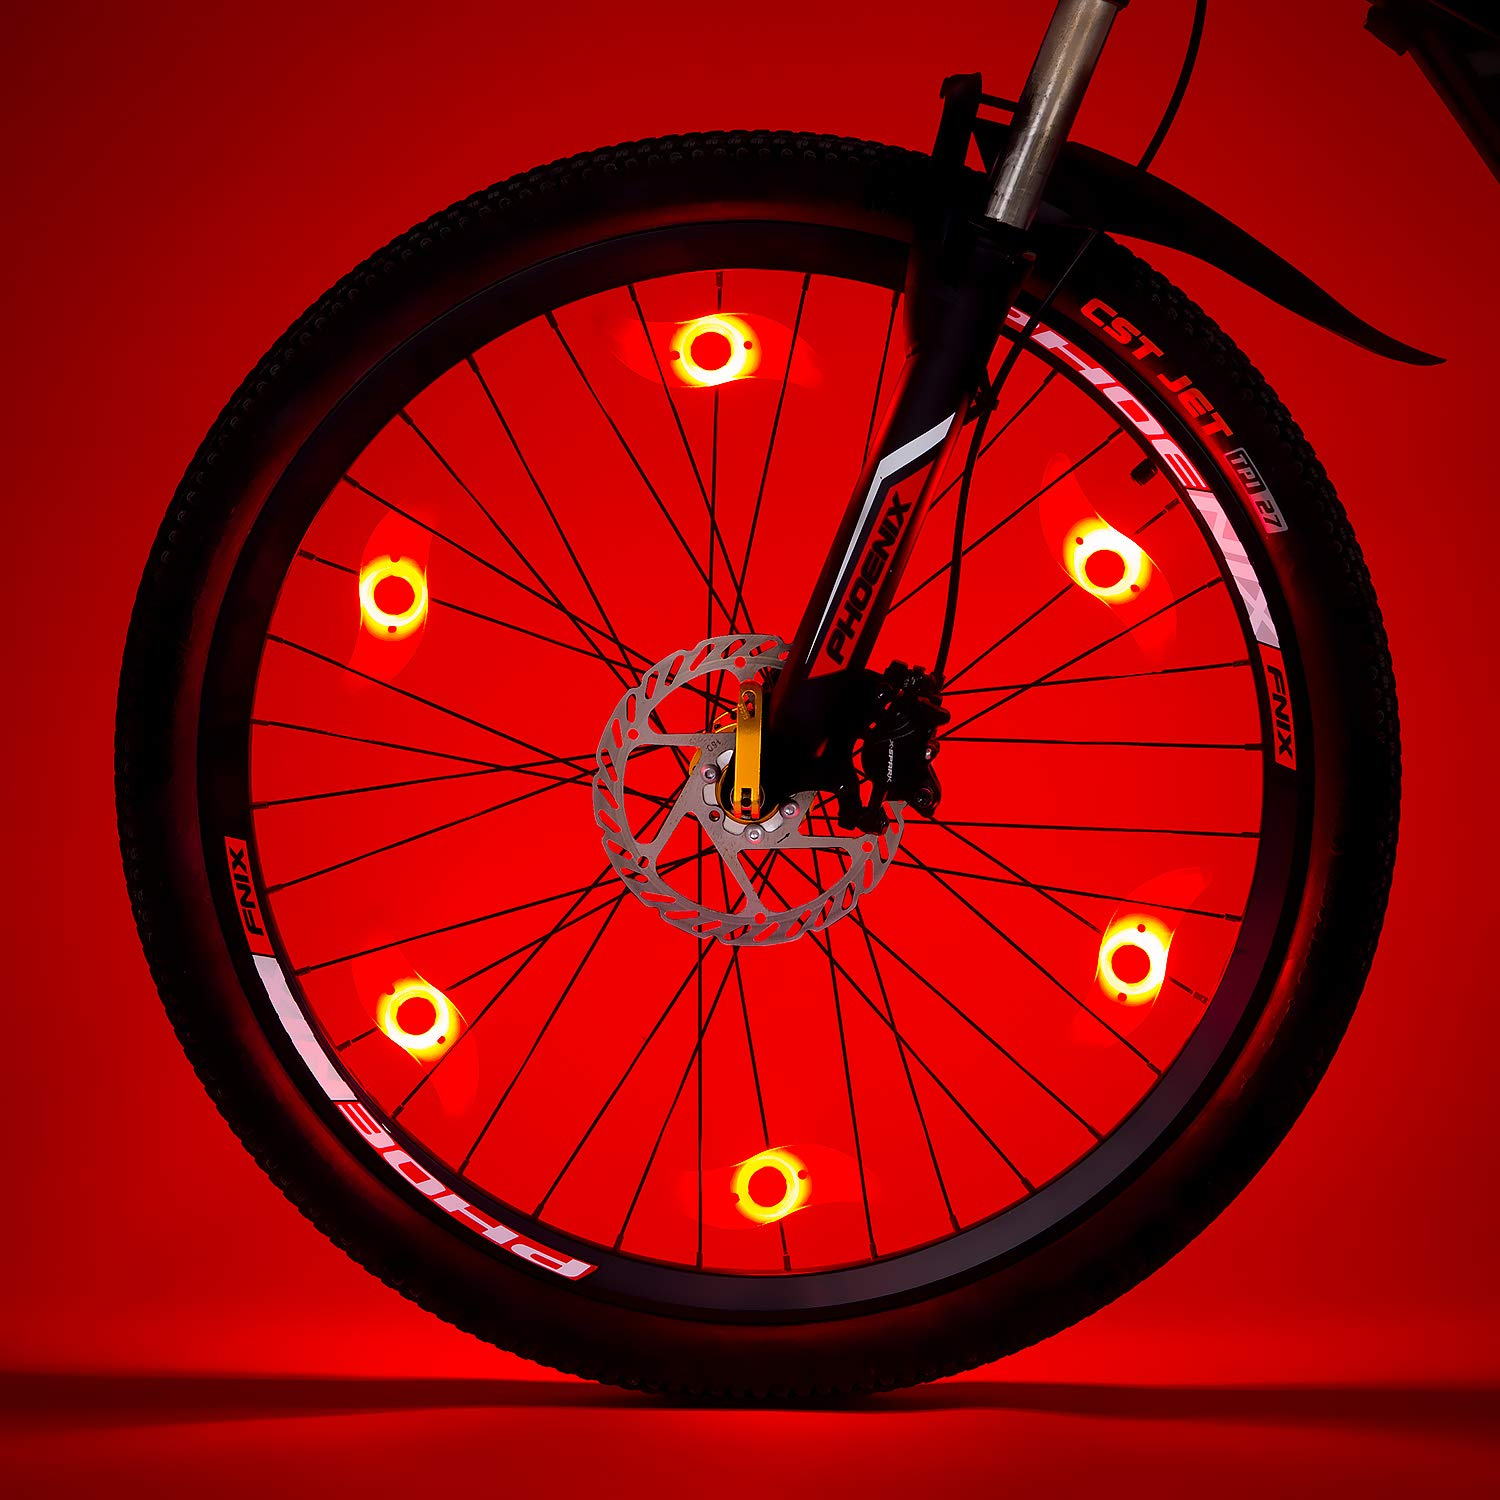 Willceal Bike Spoke Light 6PCS, Bike Wheel Light,Tyre Wire Right with 6 LED Flash Model Neon Lamps,Bike Safety Alarm Light. (Red) by Willceal (Image #1)